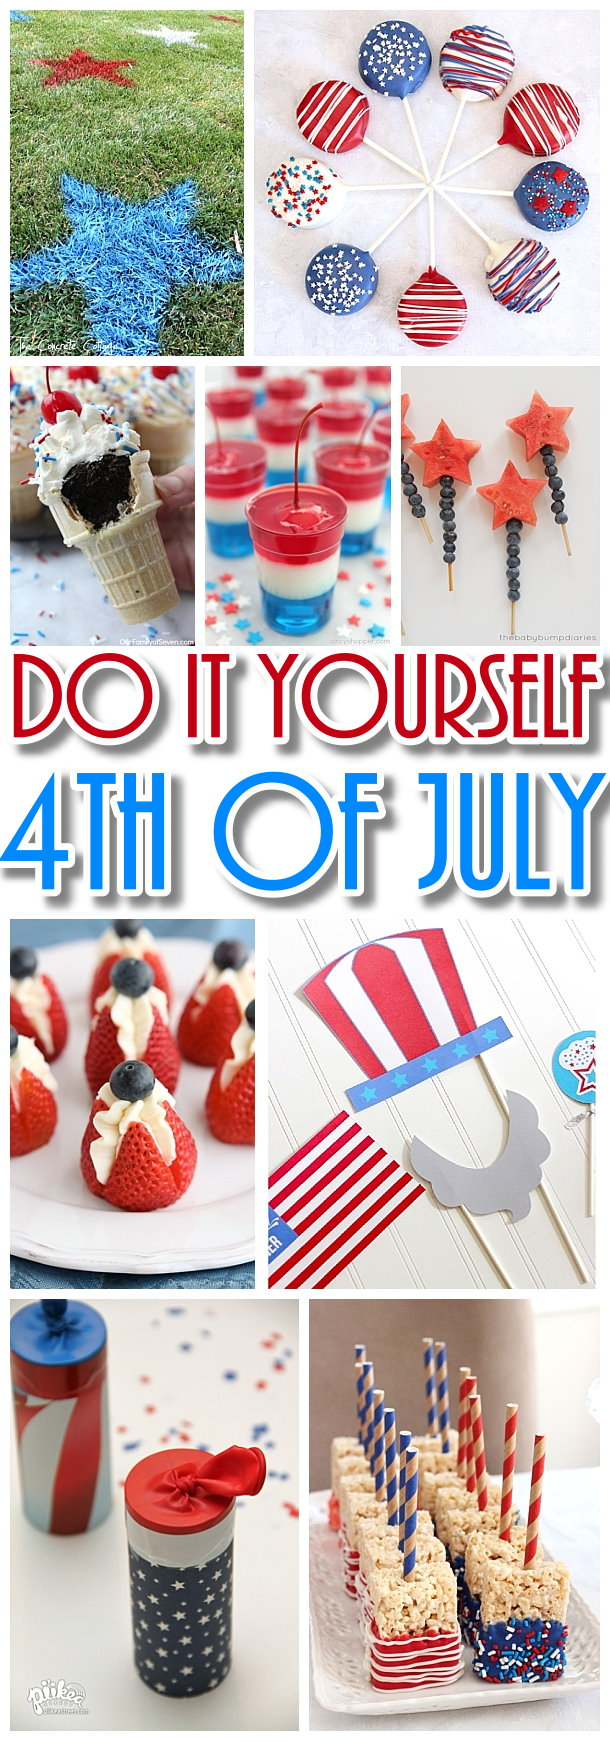 Do it Yourself 4th of July Red White and Blue Party - The BEST Recipes - Games - Decorations and fun ideas for your DIY Independence Day Party #4thofjuly #independenceday #allamericanparty #redwhiteandblue #patrioticparty #patriotic #4thofjulyparty